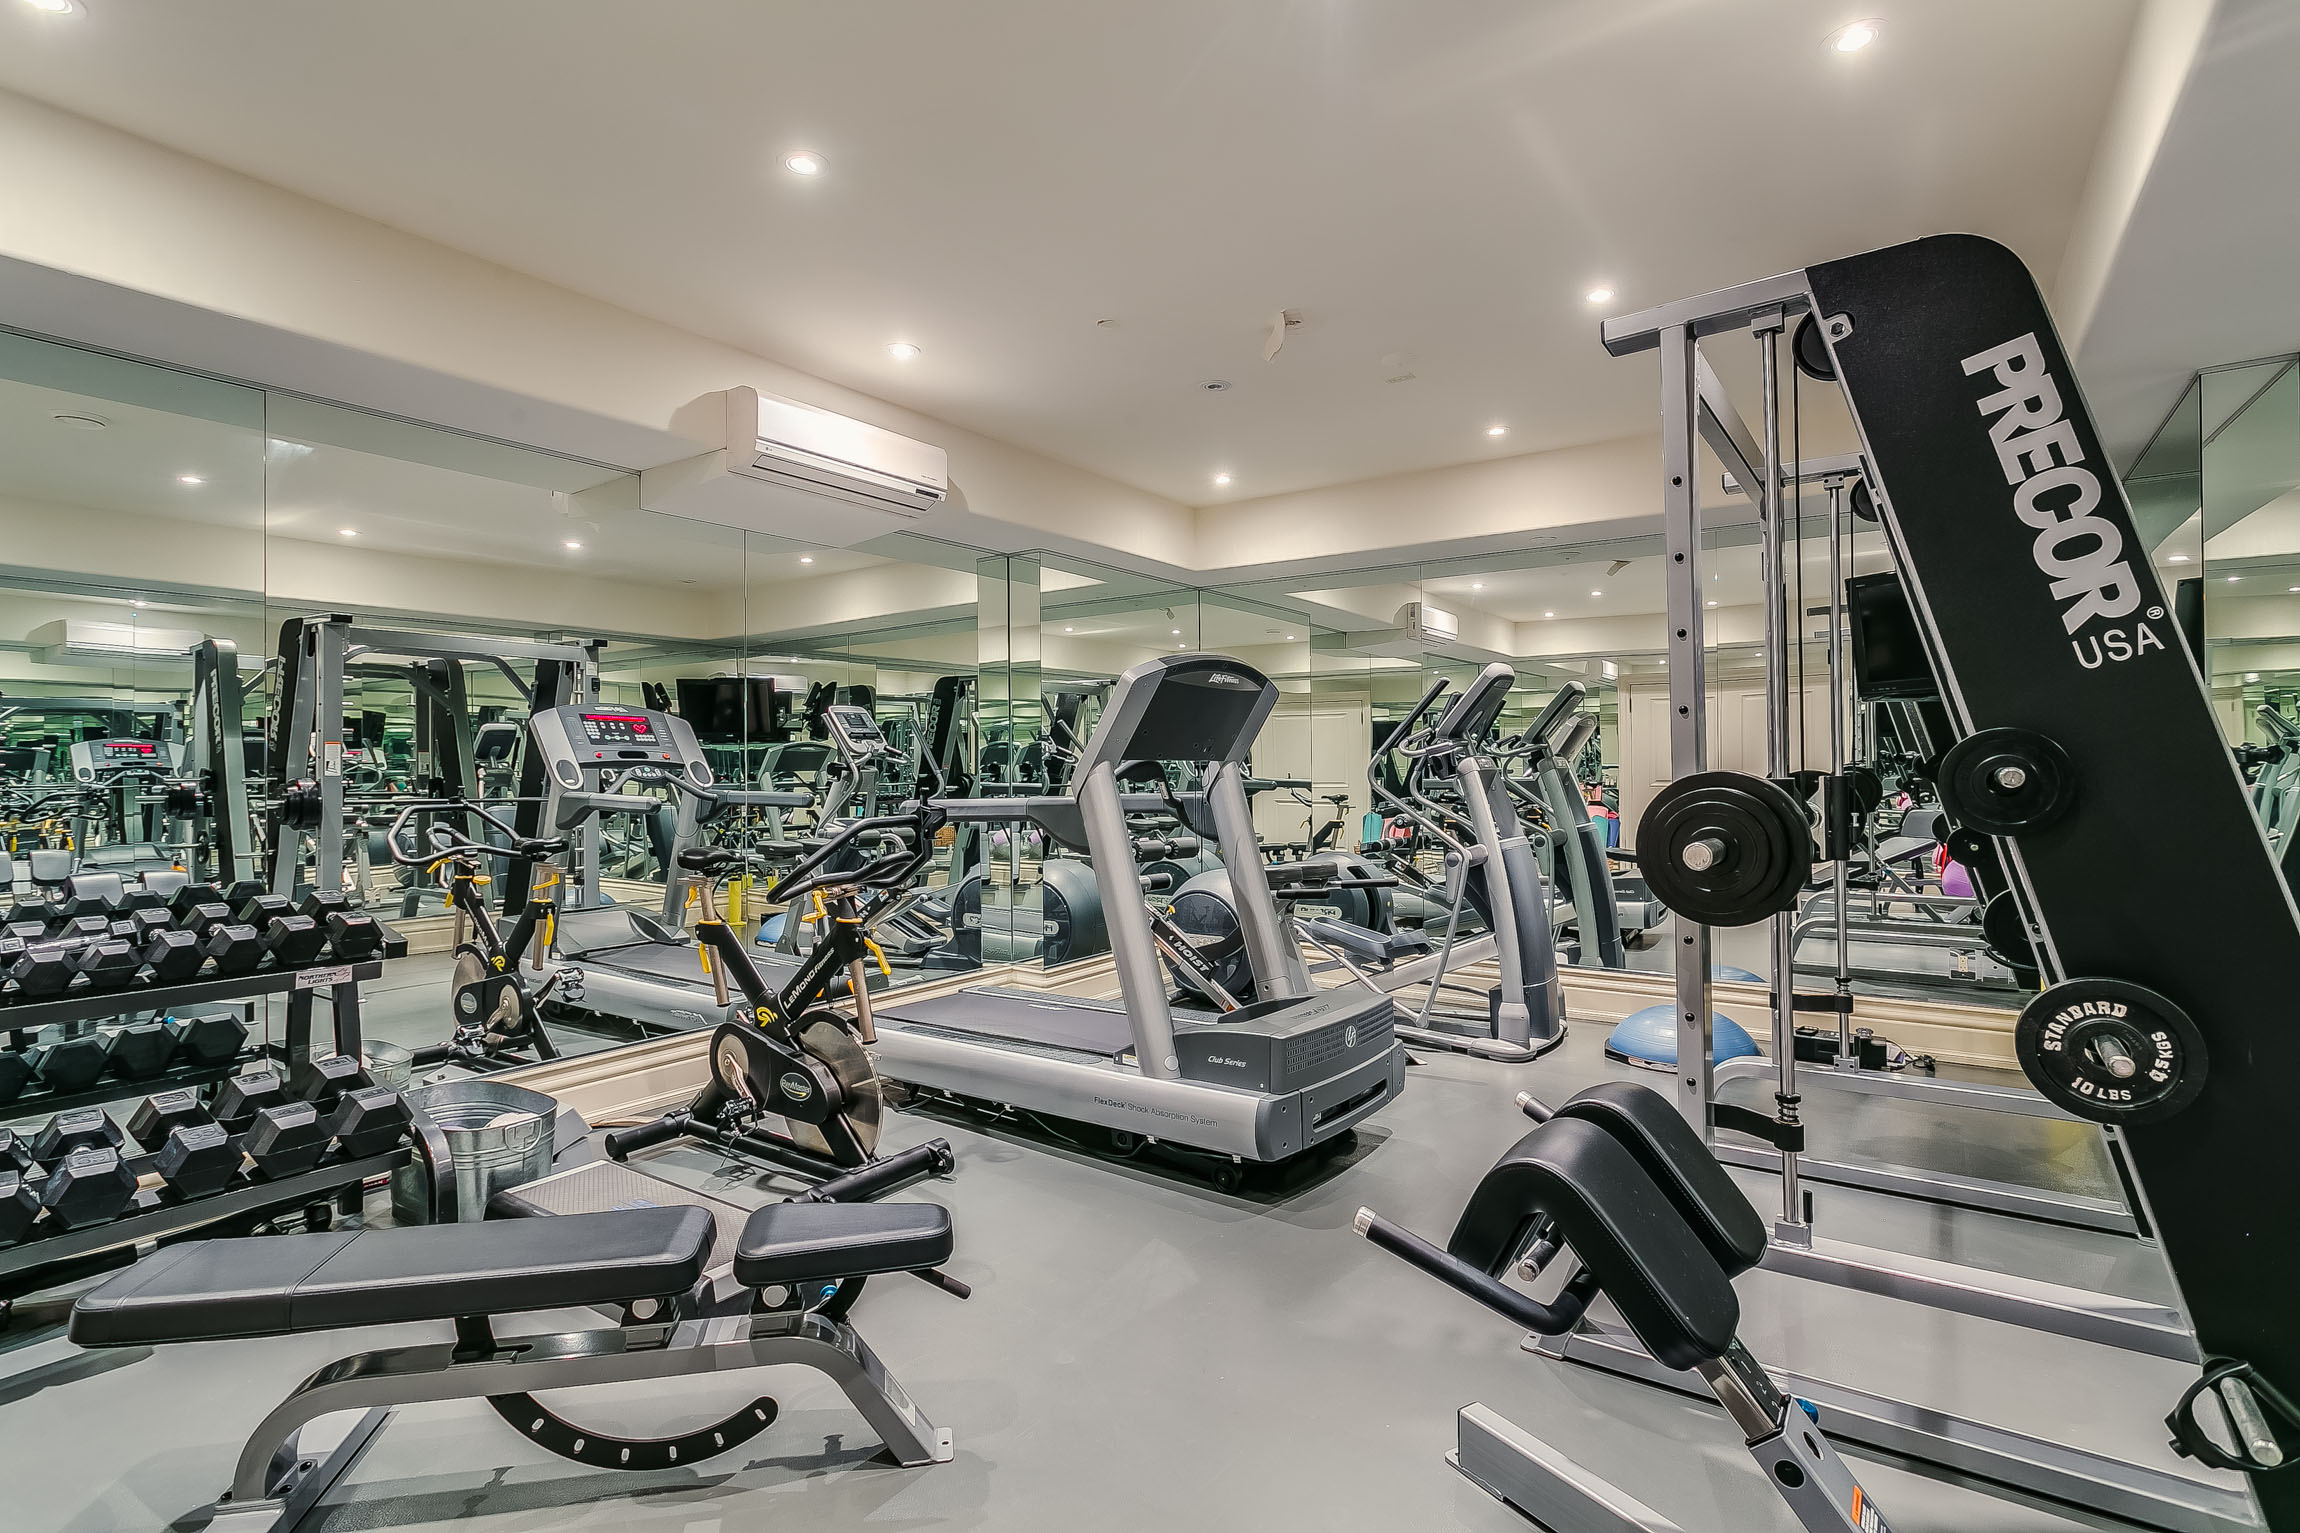 the gym - Nothing Speaks To The Flawless Home, Like a Wine Cellar Outfitted For Any Wine Enthusiast. Finally, The Ample Sized Gym Featuring Wall To Wall Mirroring, Completes The Lower Level.